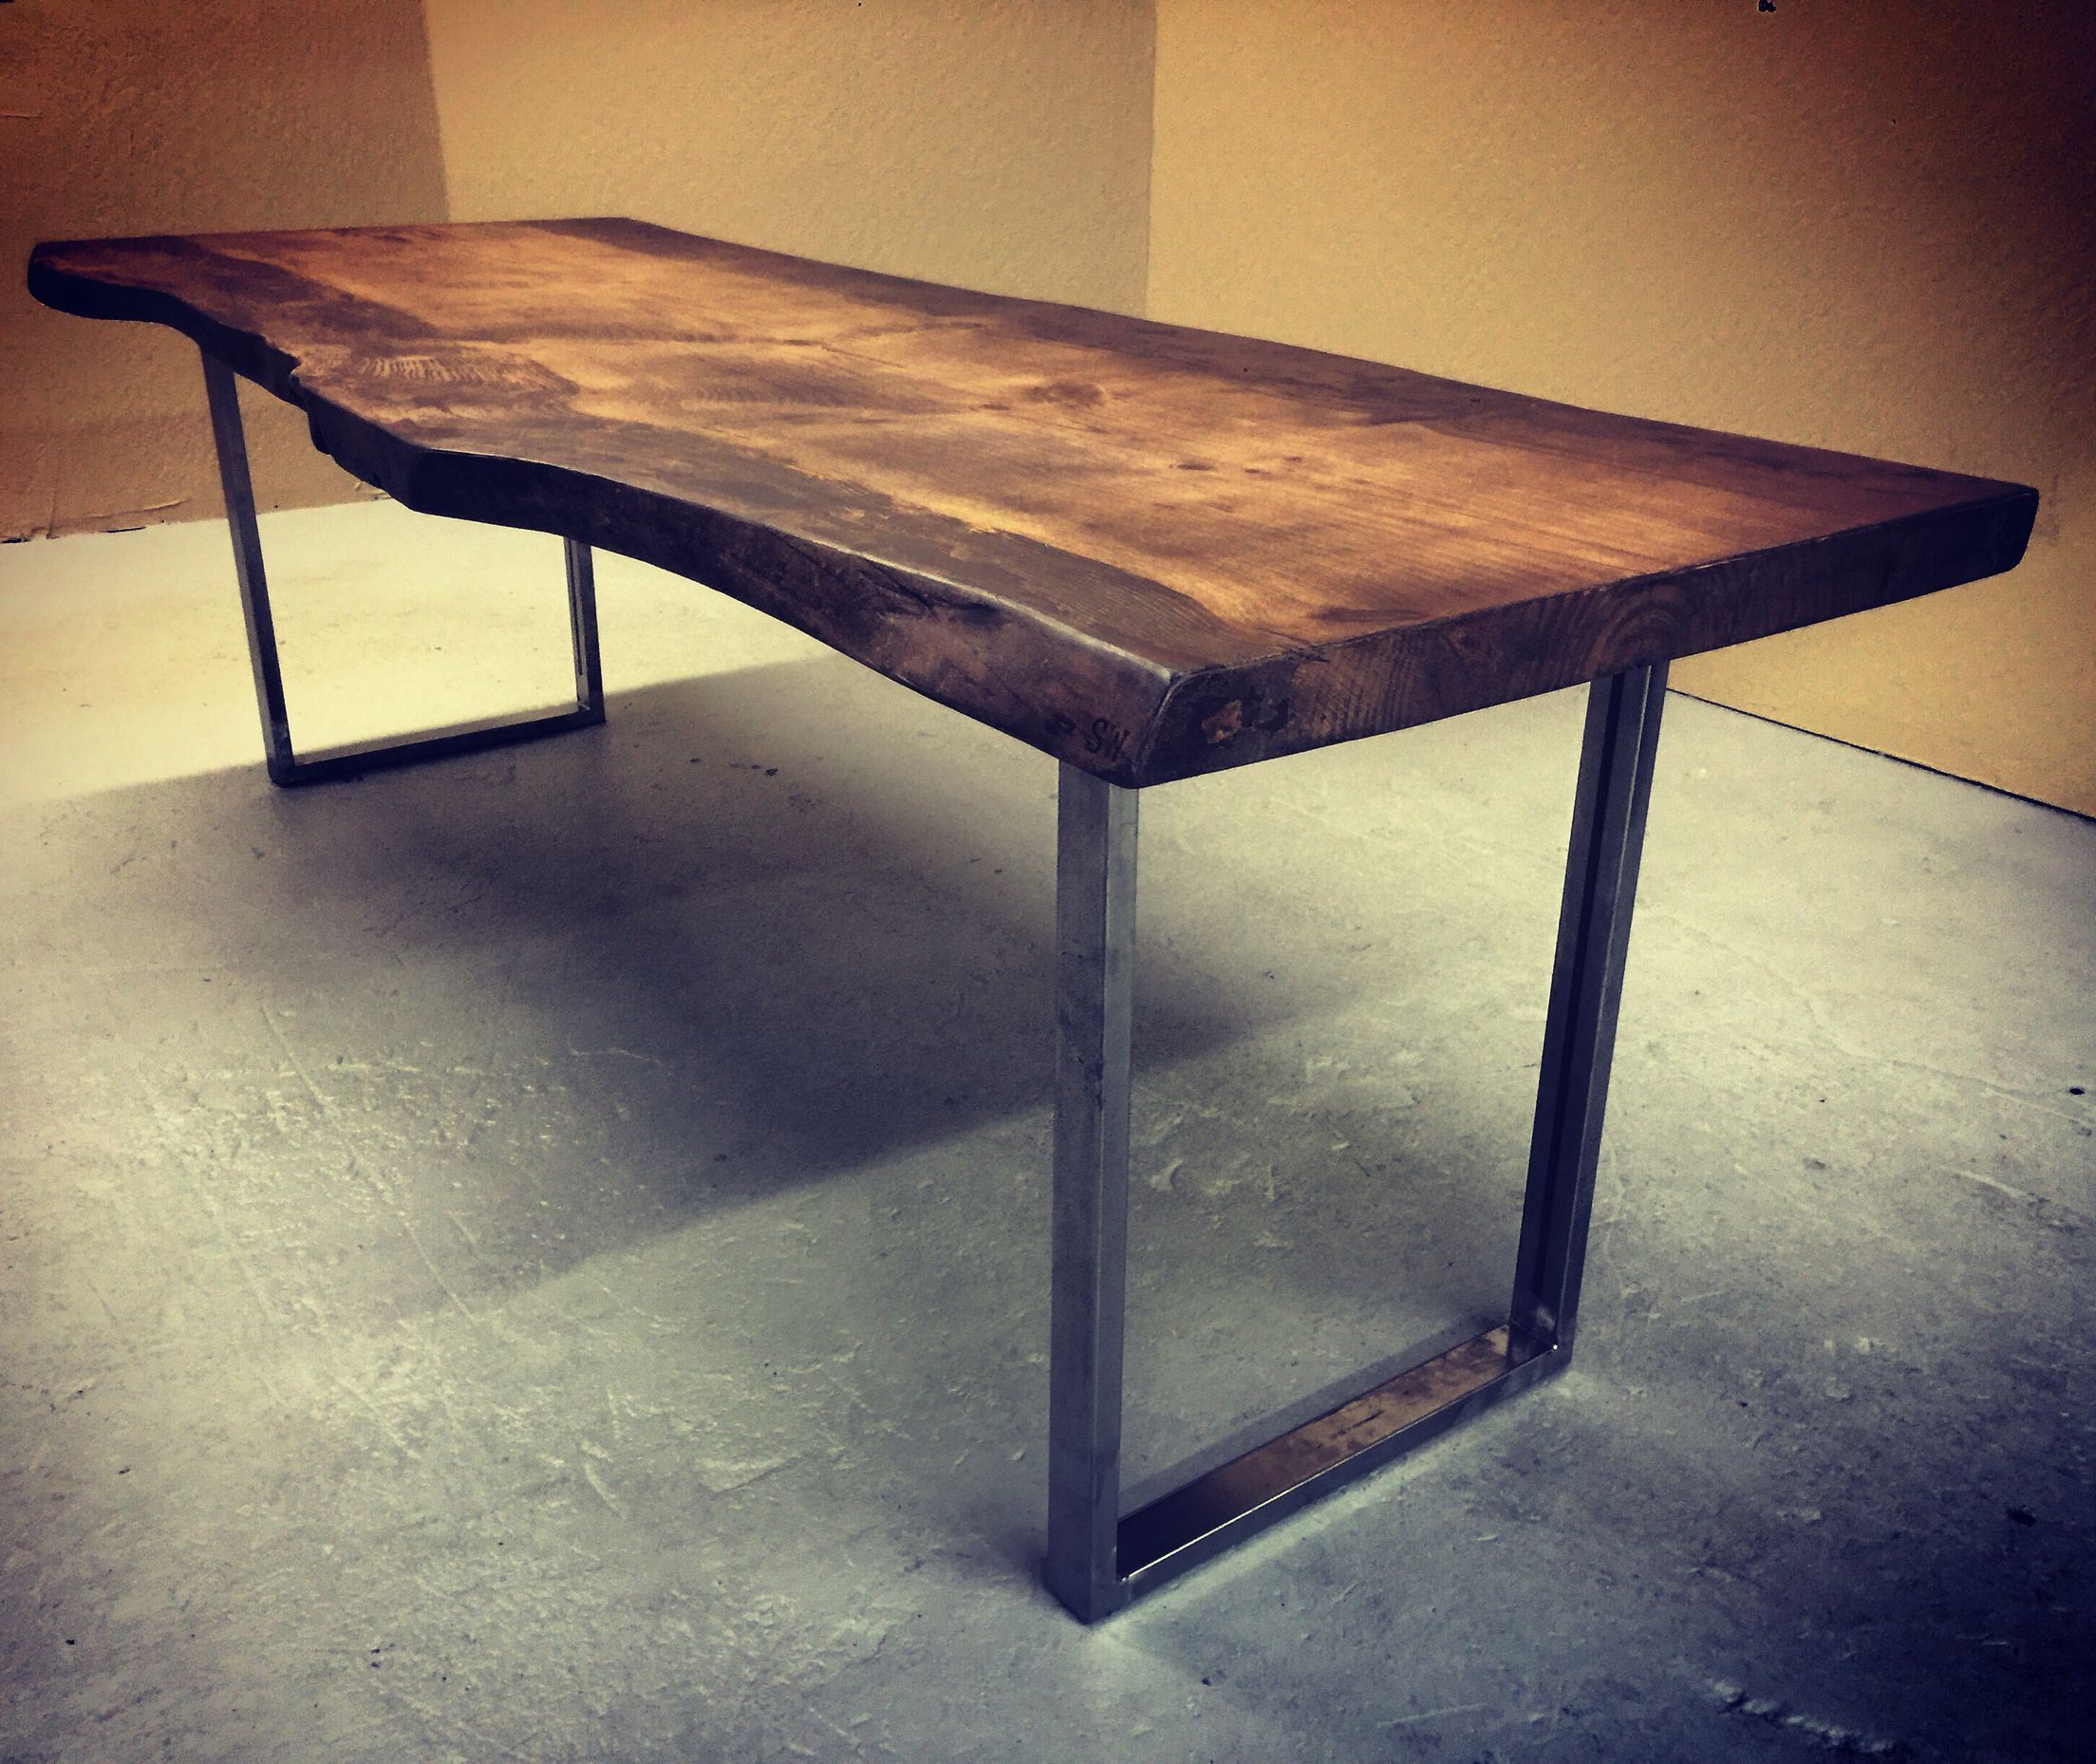 Unique Table. Solid Slab Of Douglas Fir With Live Edge. Industrial Steel  Legs.